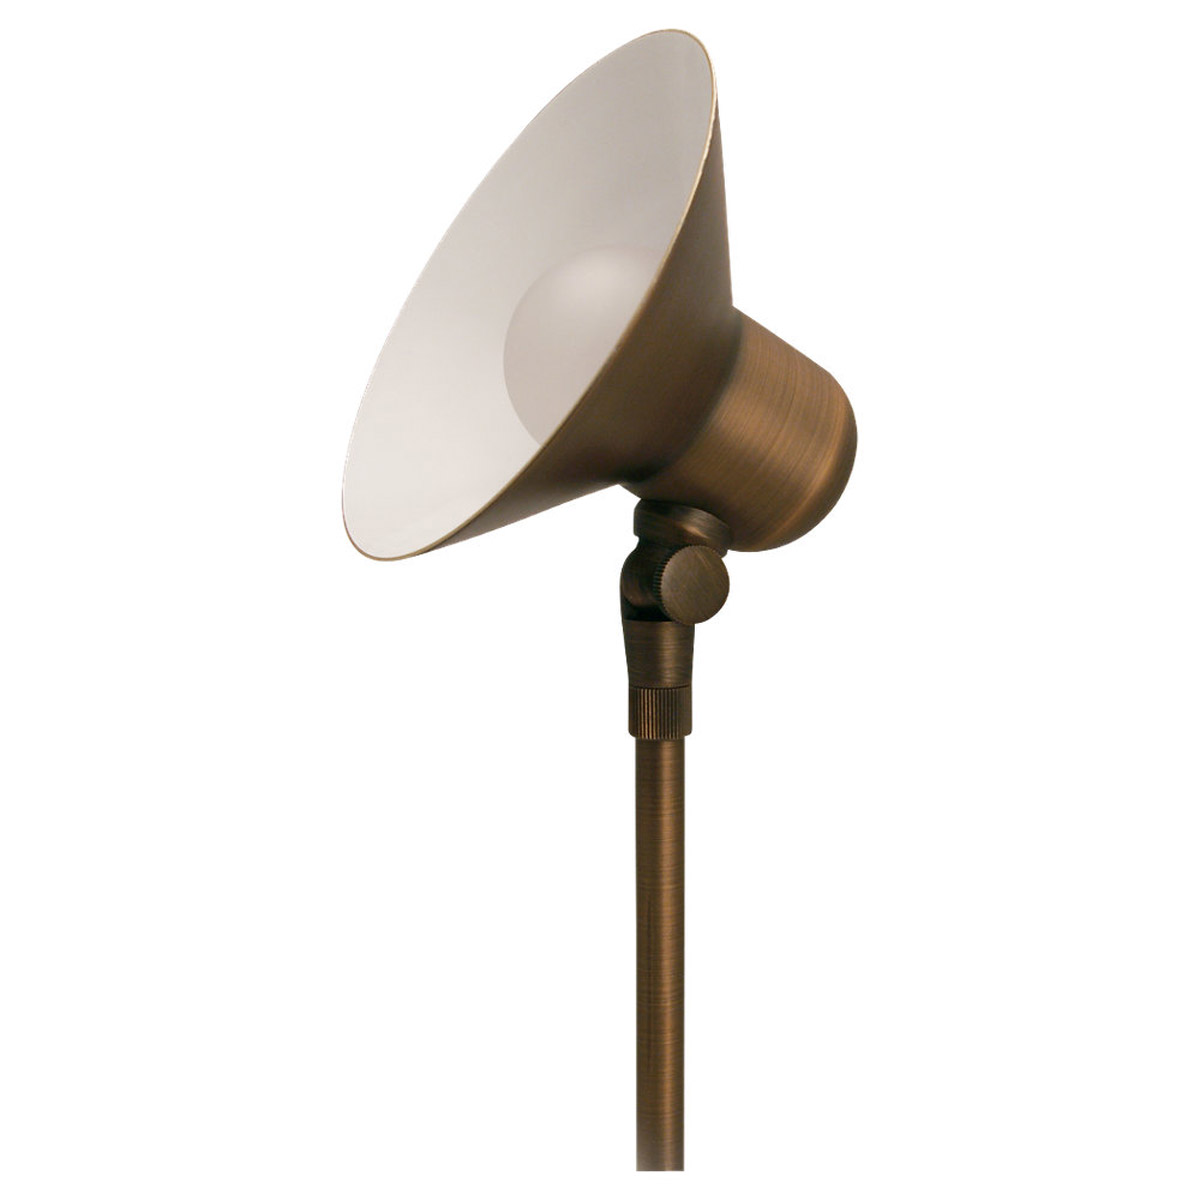 Sea Gull Lighting Imperial 1 Light Landscape Path Light in Weathered Brass 91221-147 photo